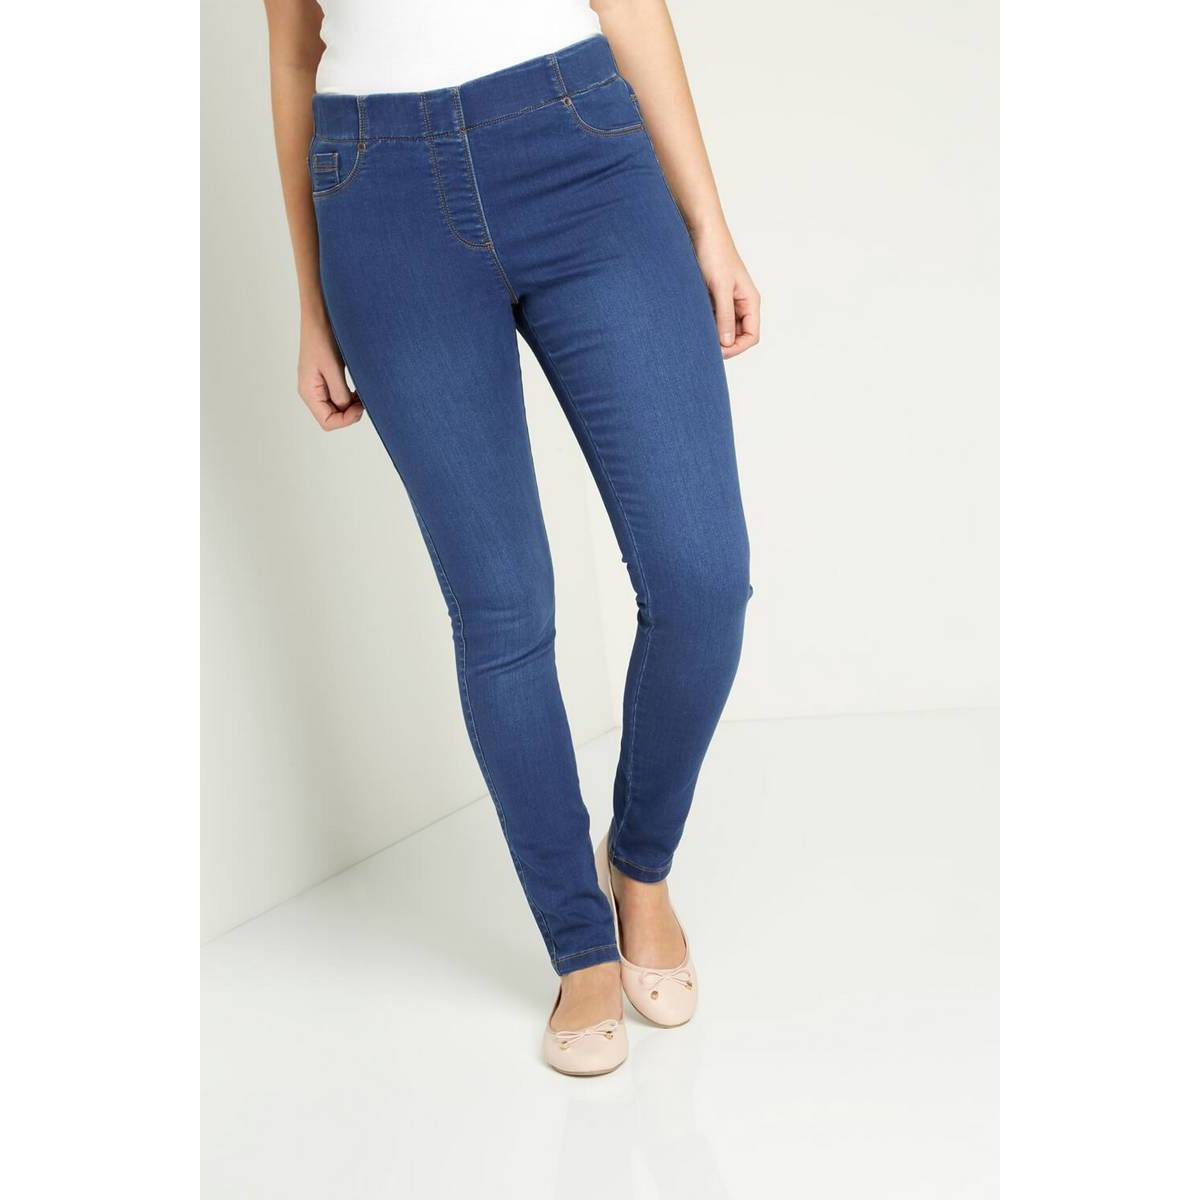 Pull on jeggings for ladies